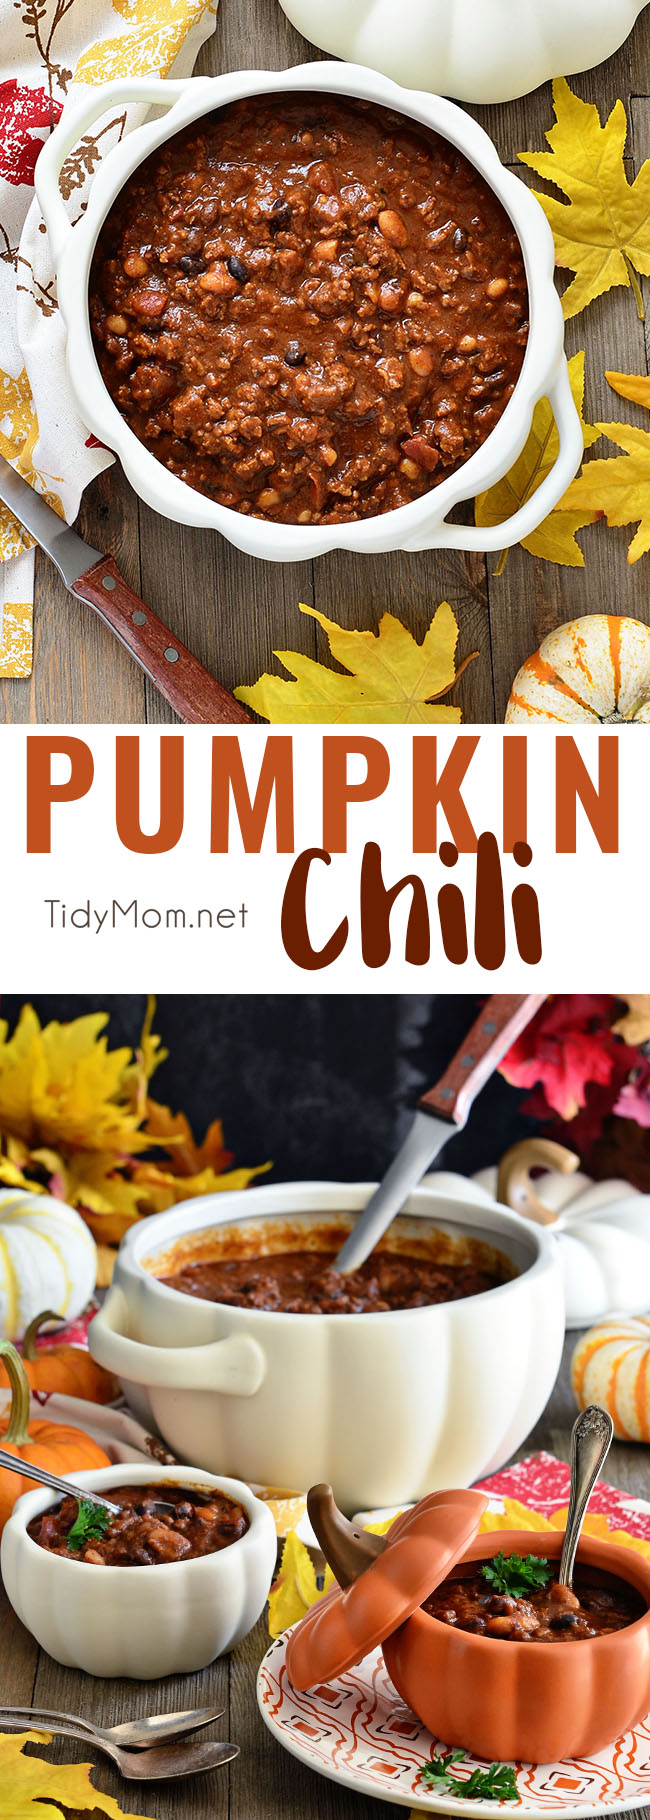 Pumpkin Chili is extra hearty with a delicious sweetness and earthy undertone that takes chili to a whole new level of good.  The perfect way to knock off the chill and satisfy hungry bellies. Chili recipe at TidyMom.net #pumpkin #chili #comfortfood #fall